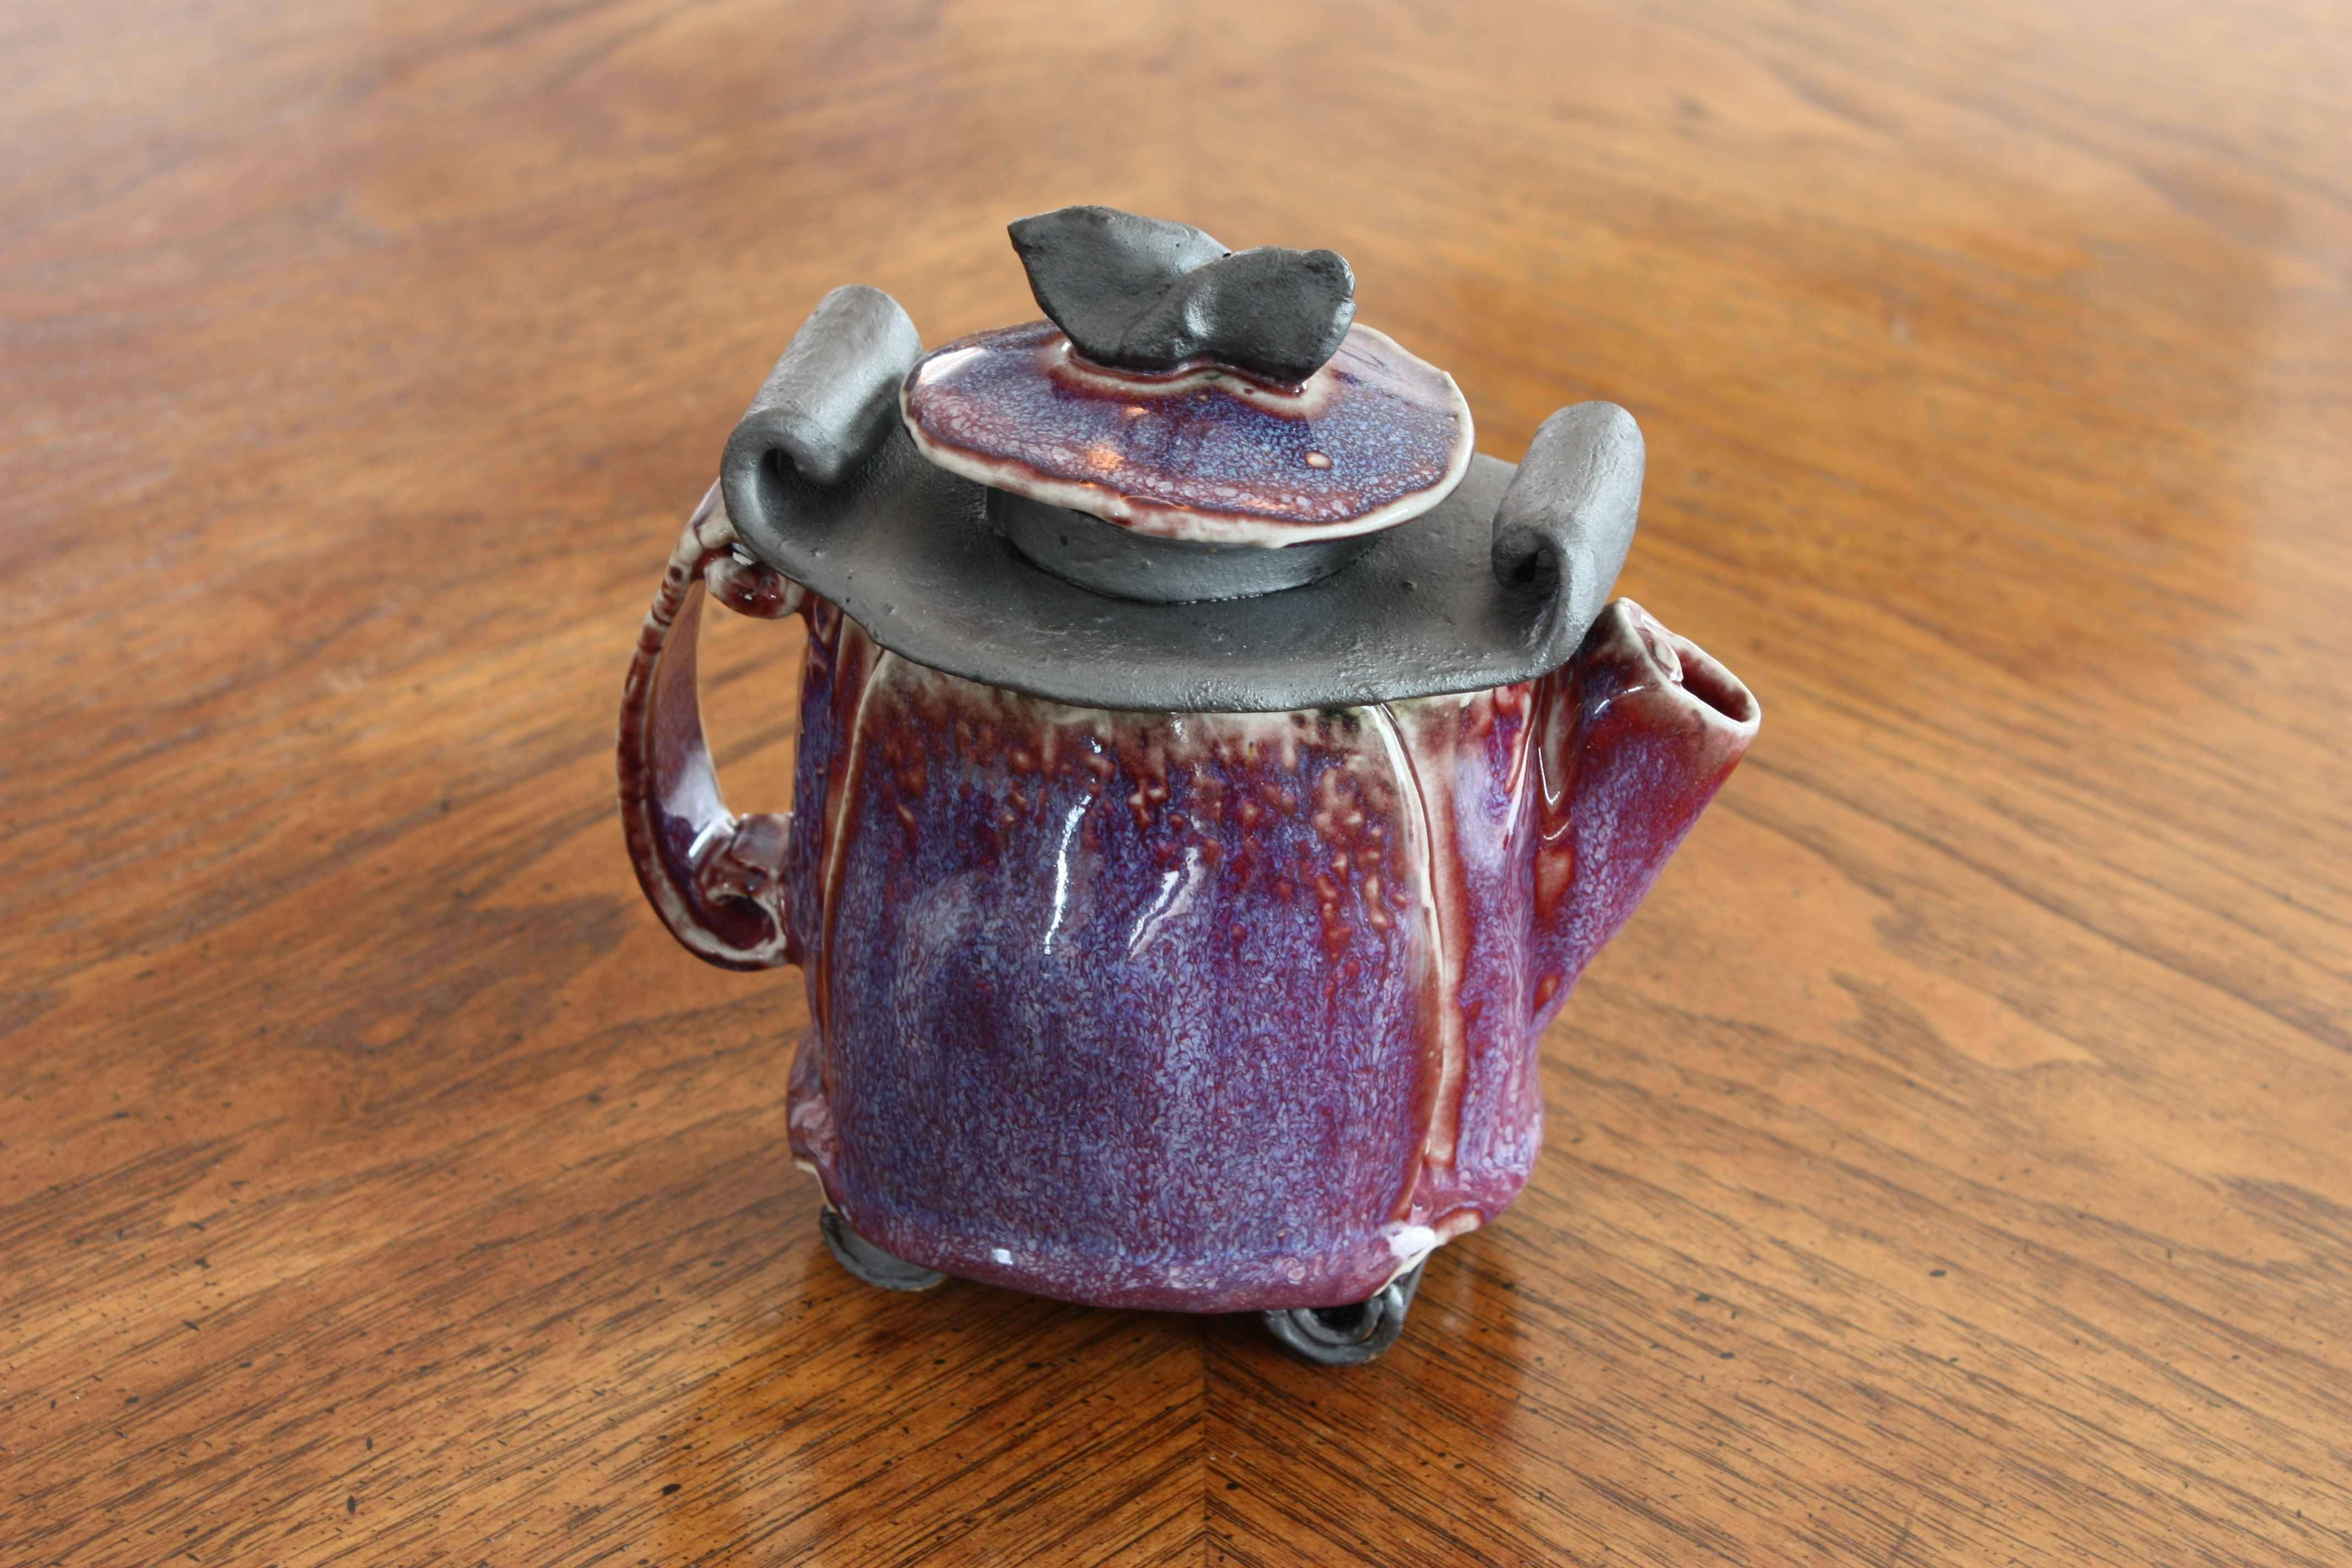 Pottery can be functional as well as beautiful, as shown in this piece by Phyllis Pischl.